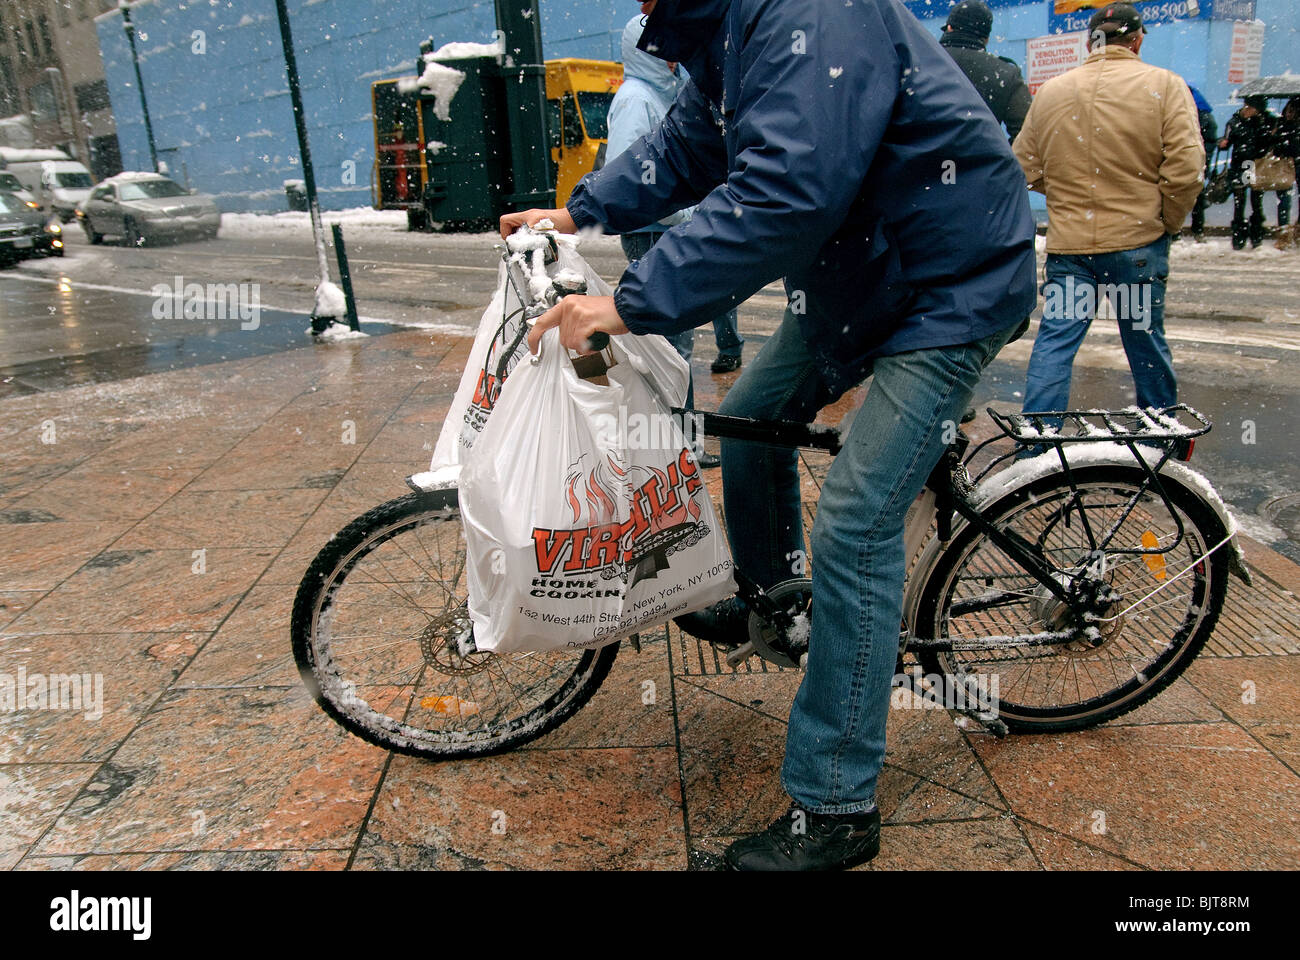 Food Delivery Man On Bicycle New York City Manhattan Stock Photo